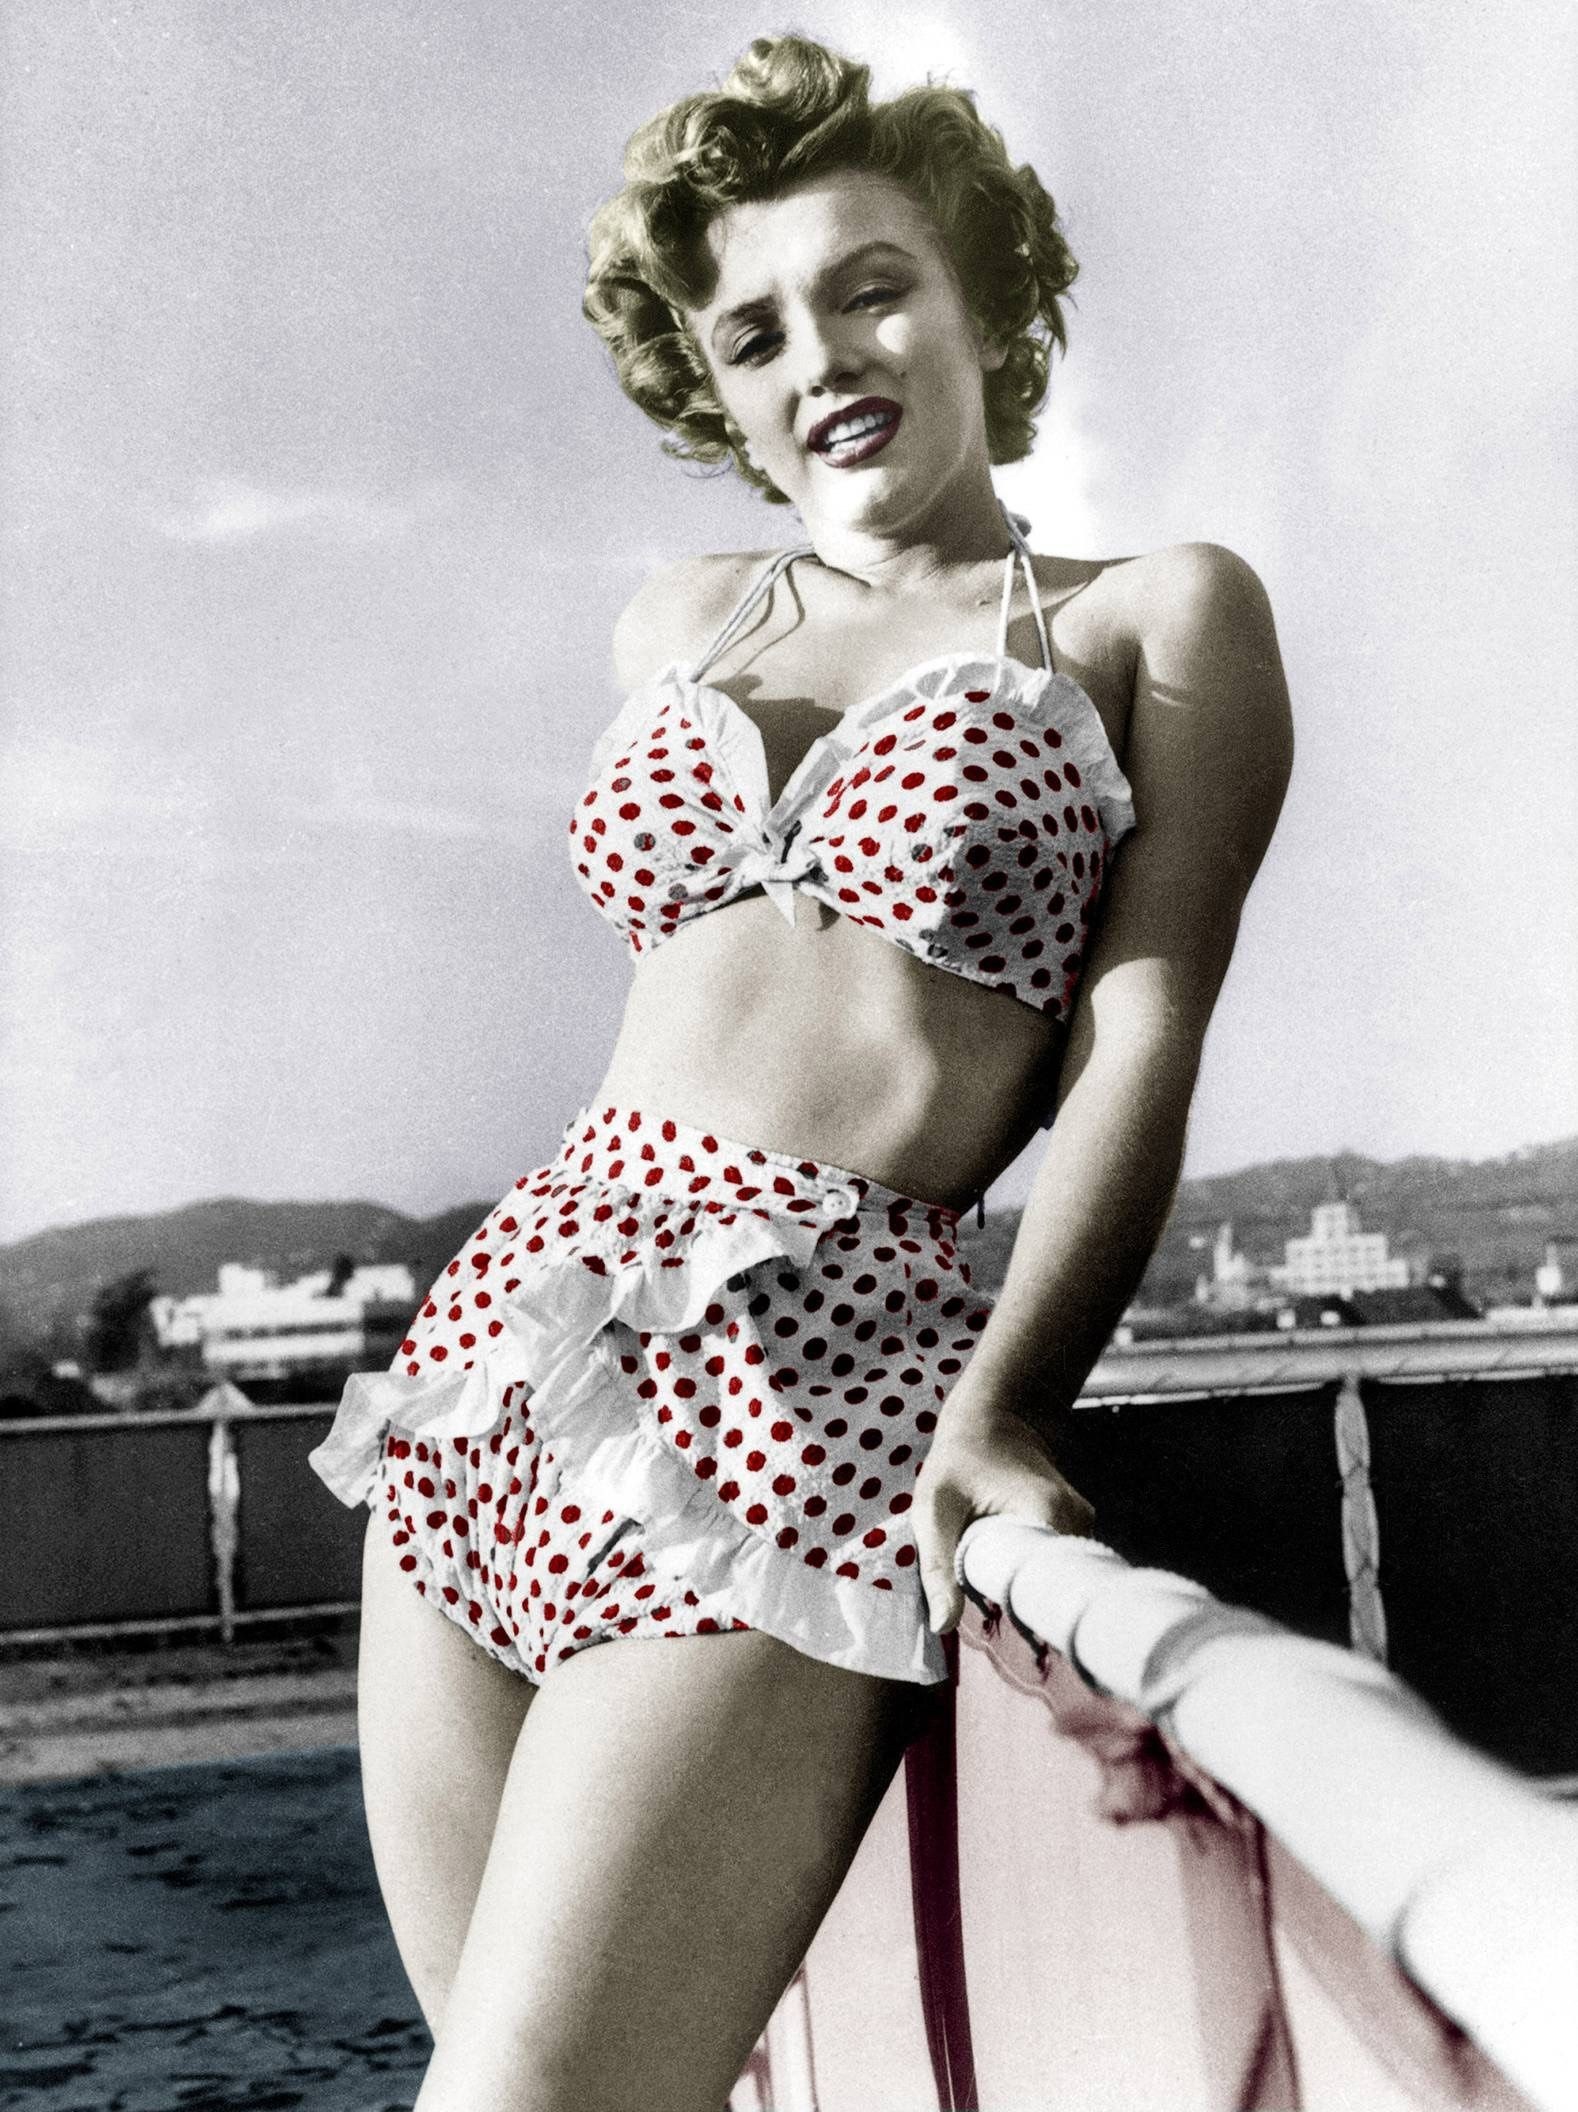 d1c67f65a8 Marilyn-- Two Piece Swimsuit   Polka Dots   Vintage    Retro Style    Marilyn Monroe